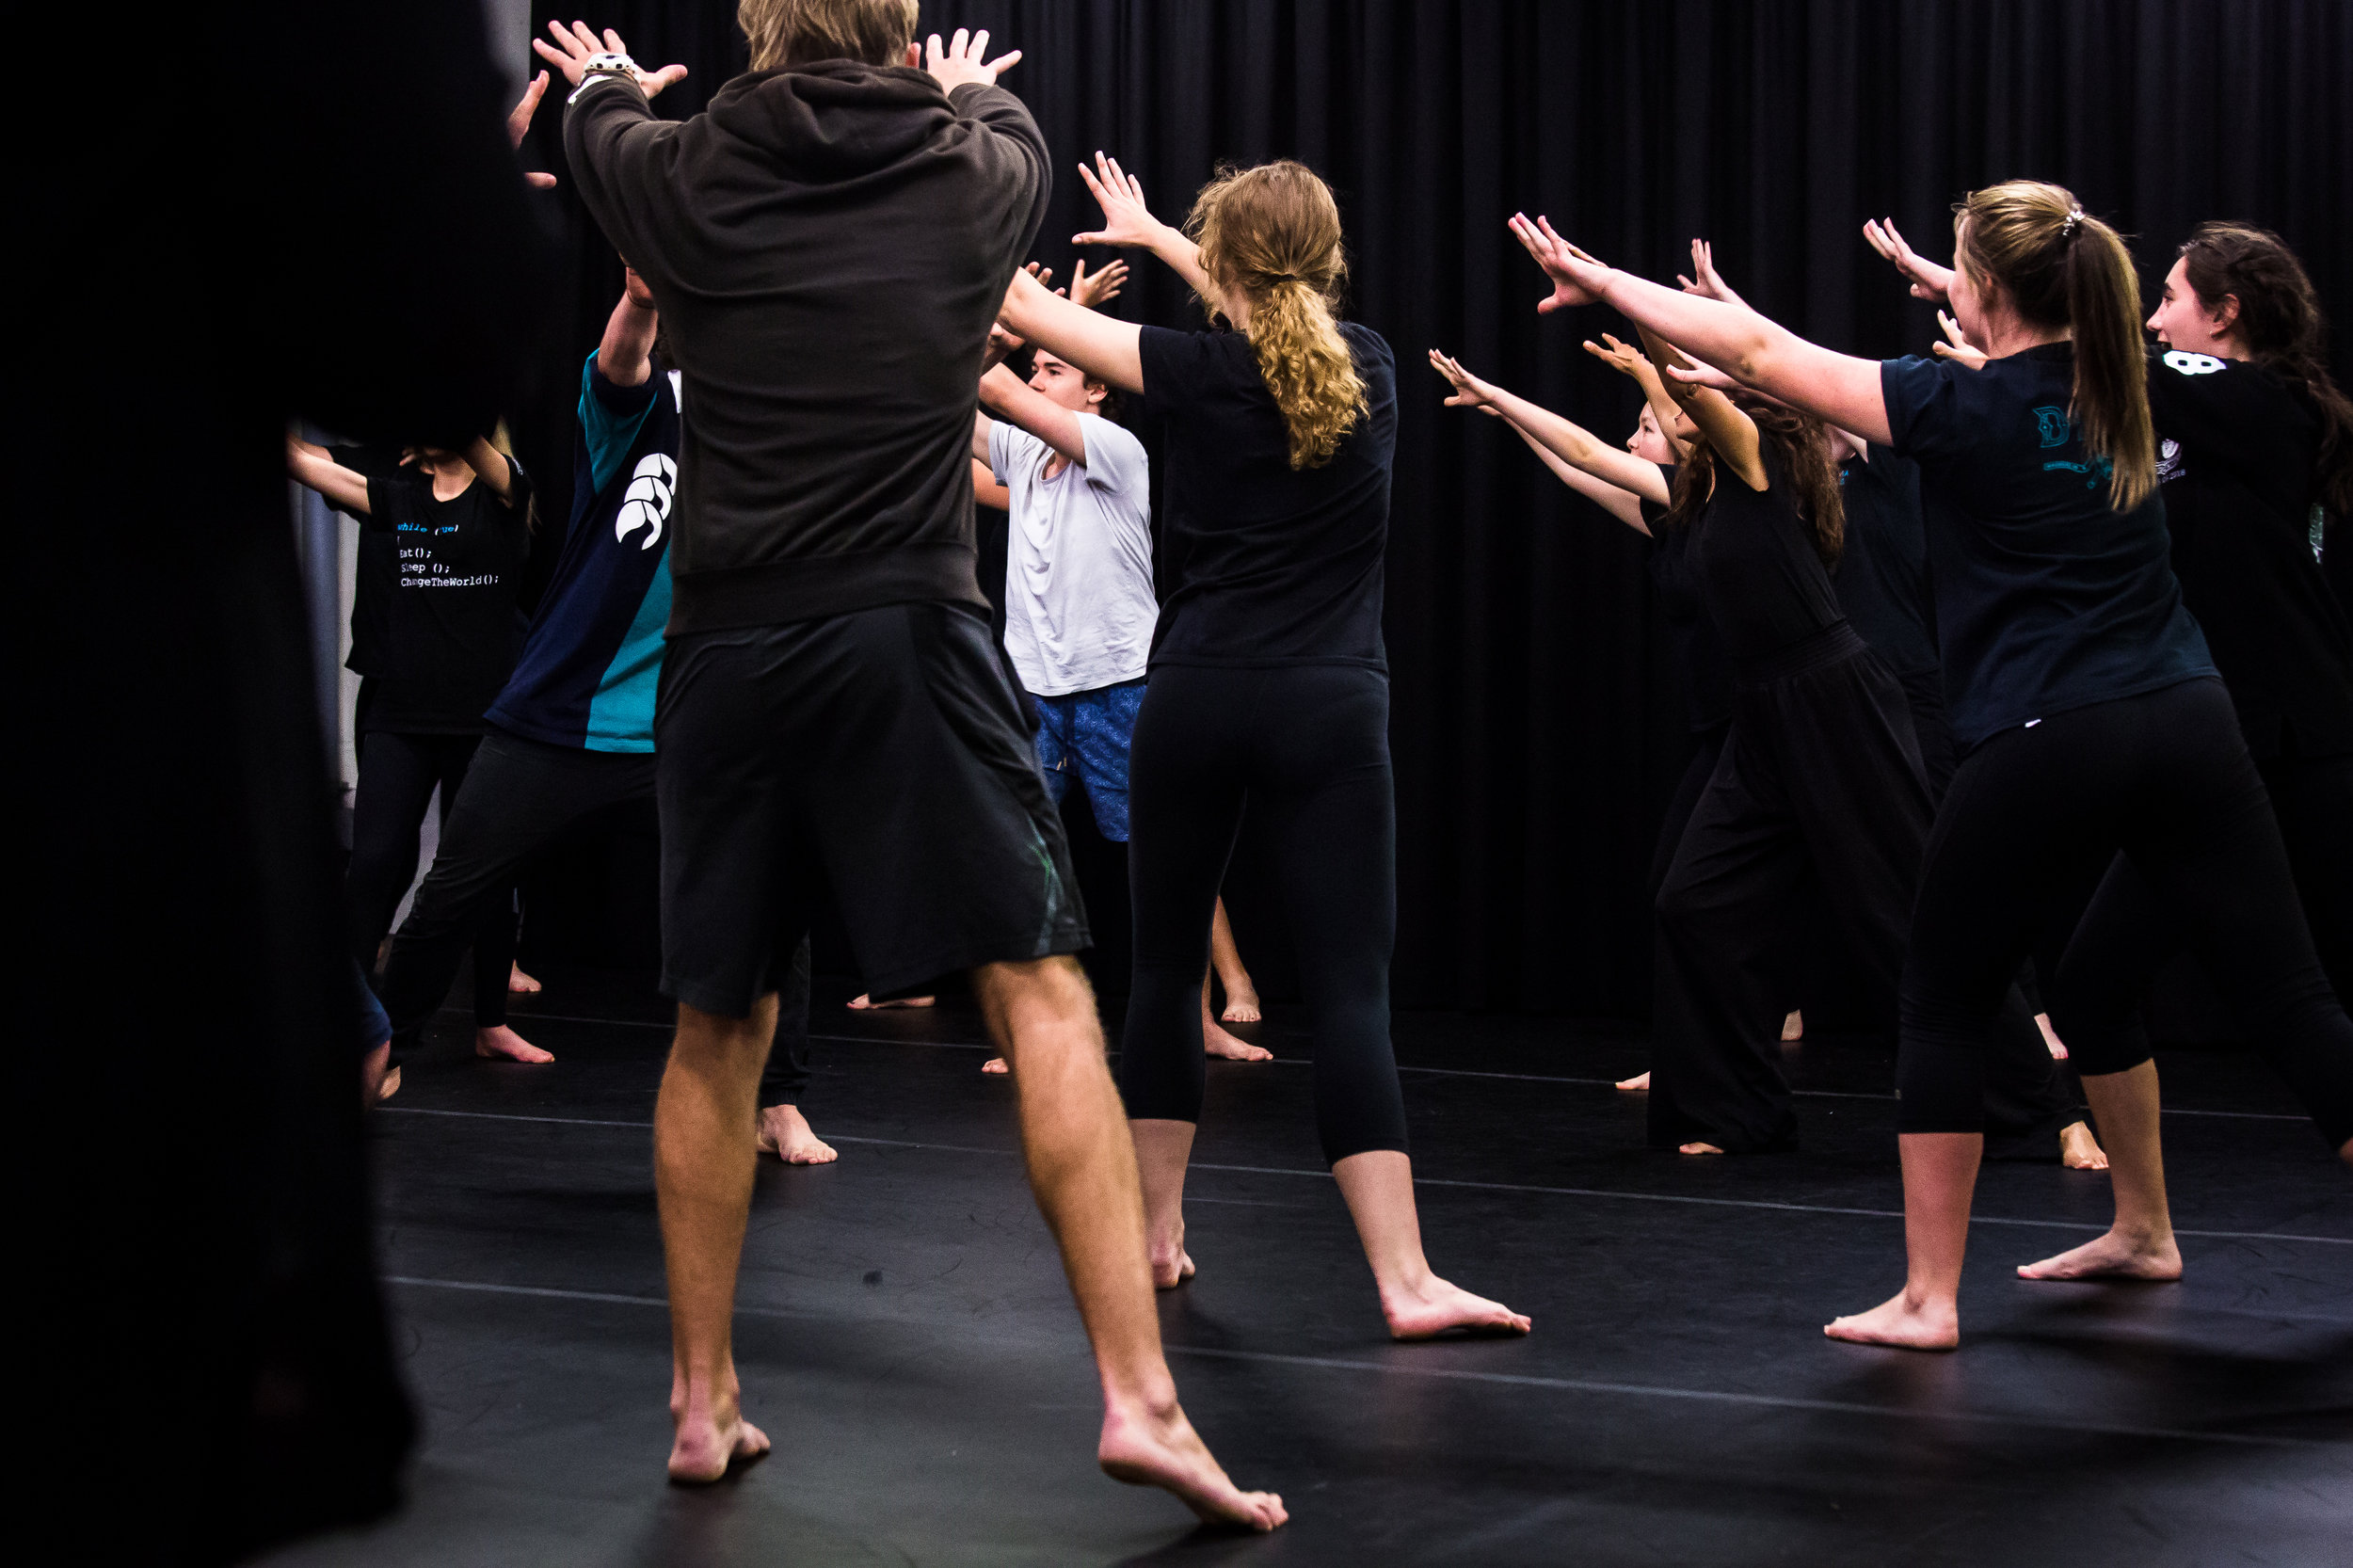 WORKSHOP PROGRAMS FOR STUDENTS - Discover innovative approaches to storytelling and theatre-making with two programs designed to unlock creativity through movement and ensemble collaboration.